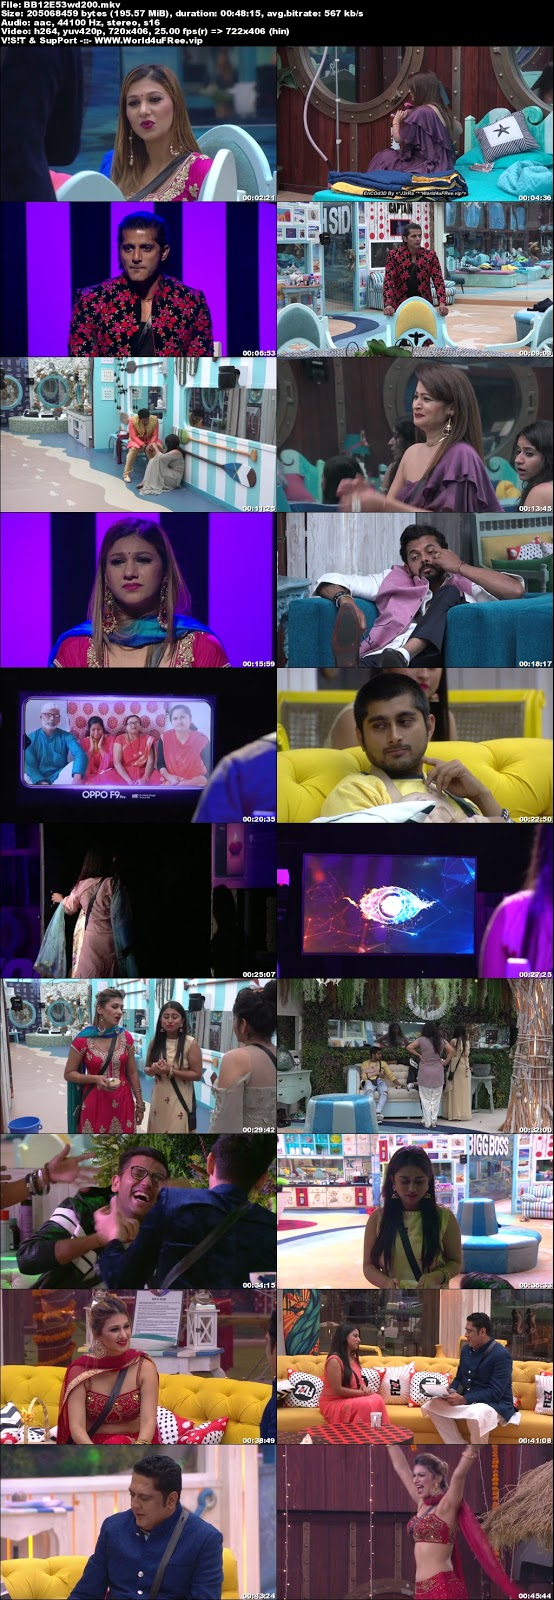 Bigg Boss 12 Episode 53 08 November 2018 WEBRip 480p 200Mb x264 world4ufree.fun tv show Episode 53 08 November 2018 world4ufree.fun 200mb 250mb 300mb compressed small size free download or watch